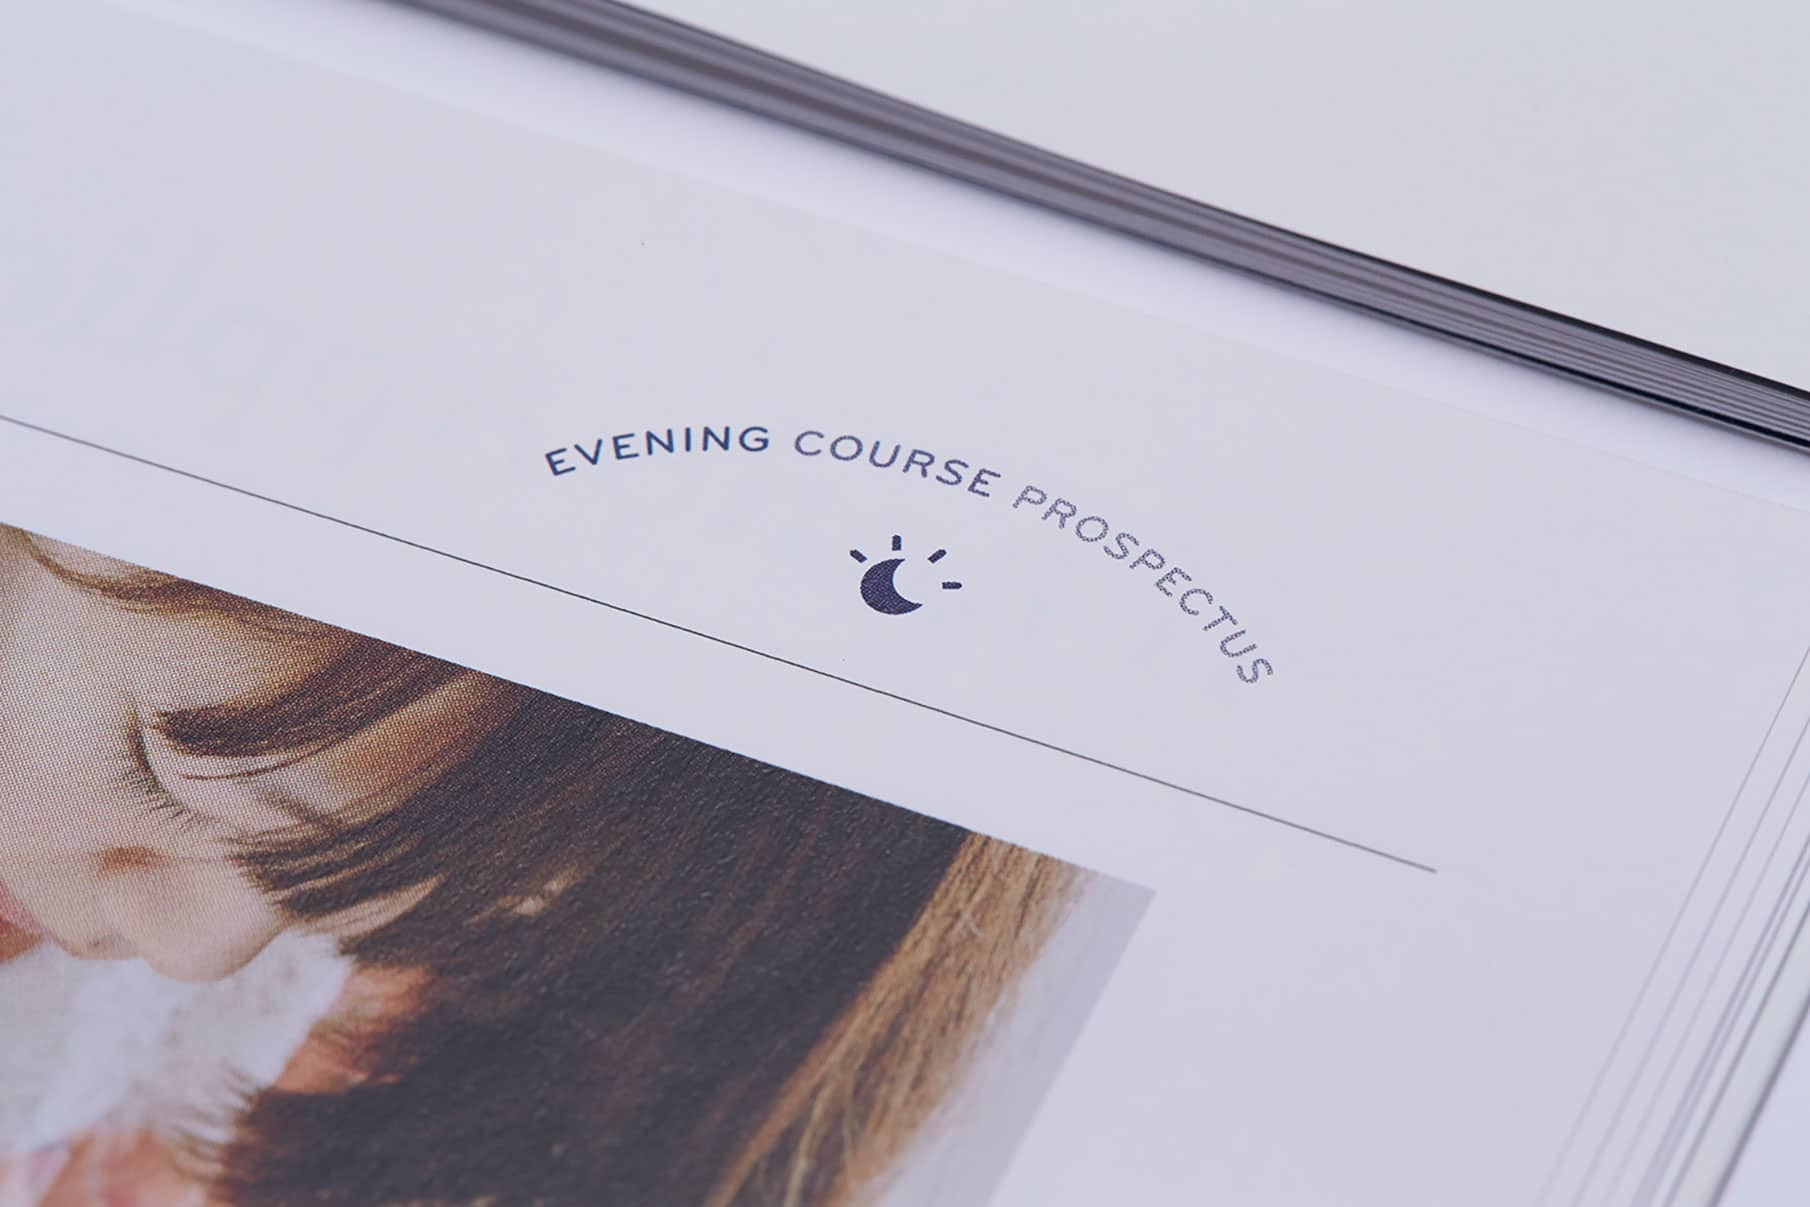 Toyo institute of art and design - Evening Course Prospectus 7